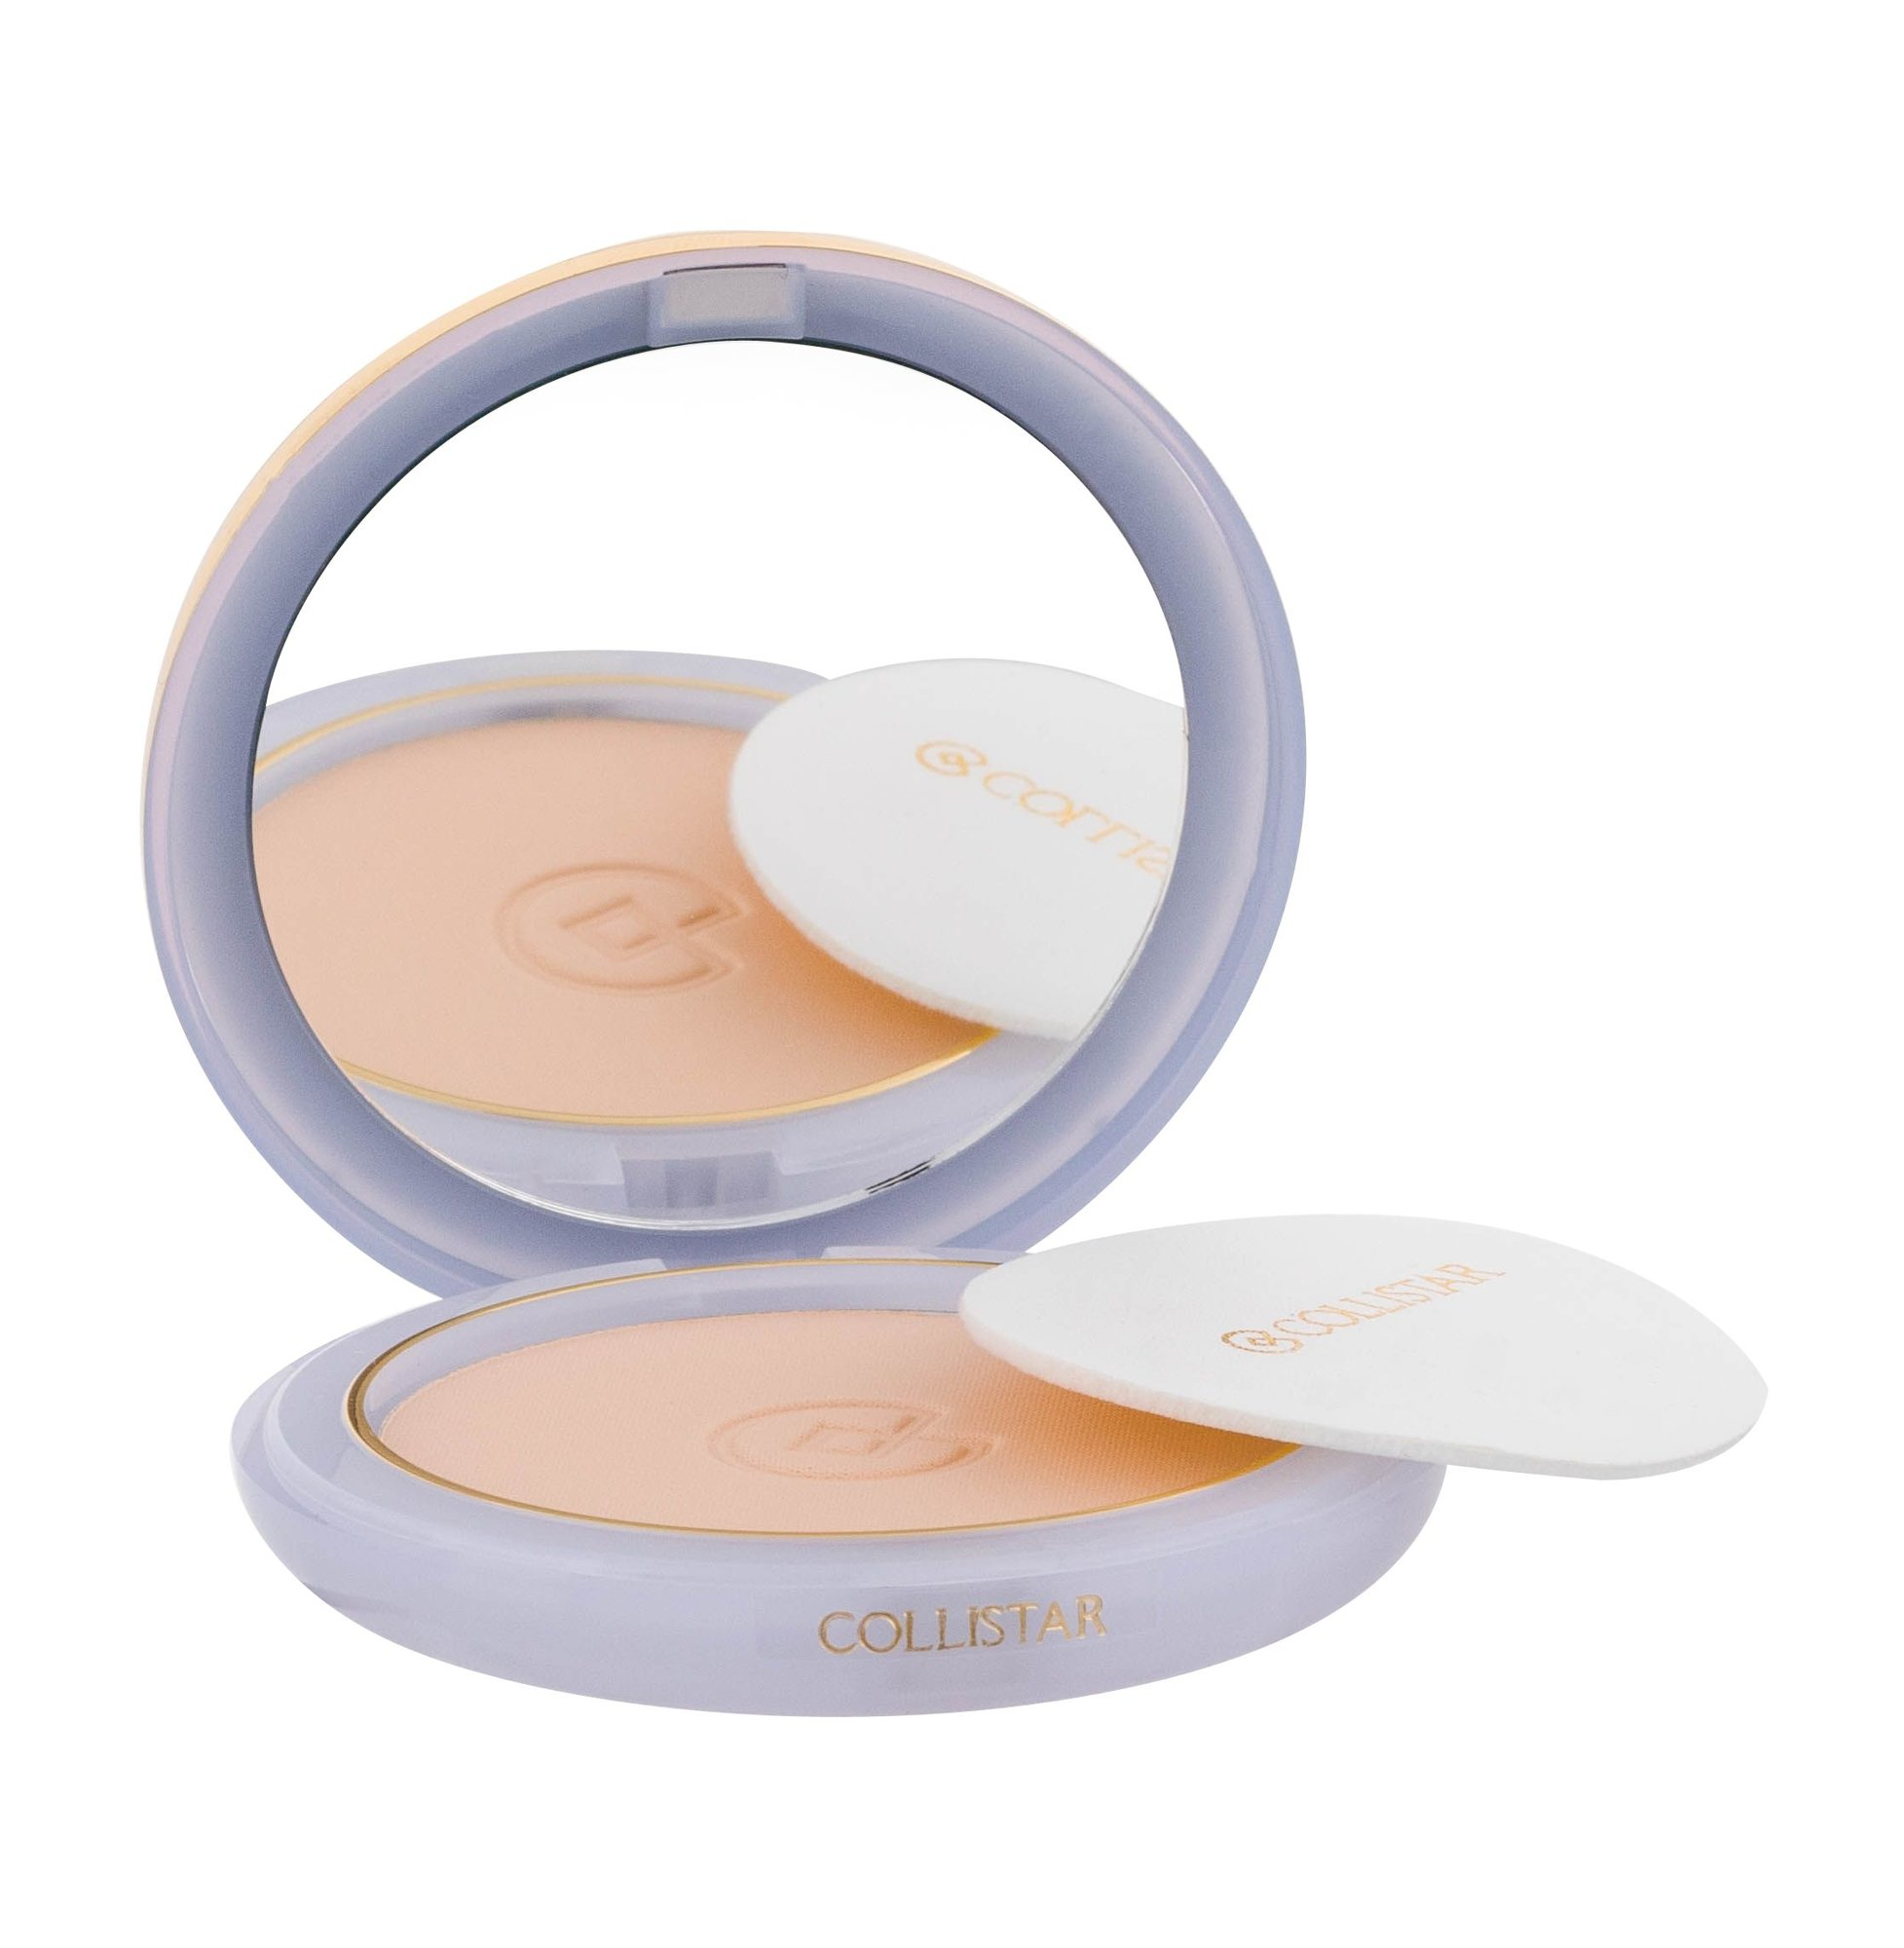 Collistar Silk Effect Compact Powder Cosmetic 7ml 1 Ivory